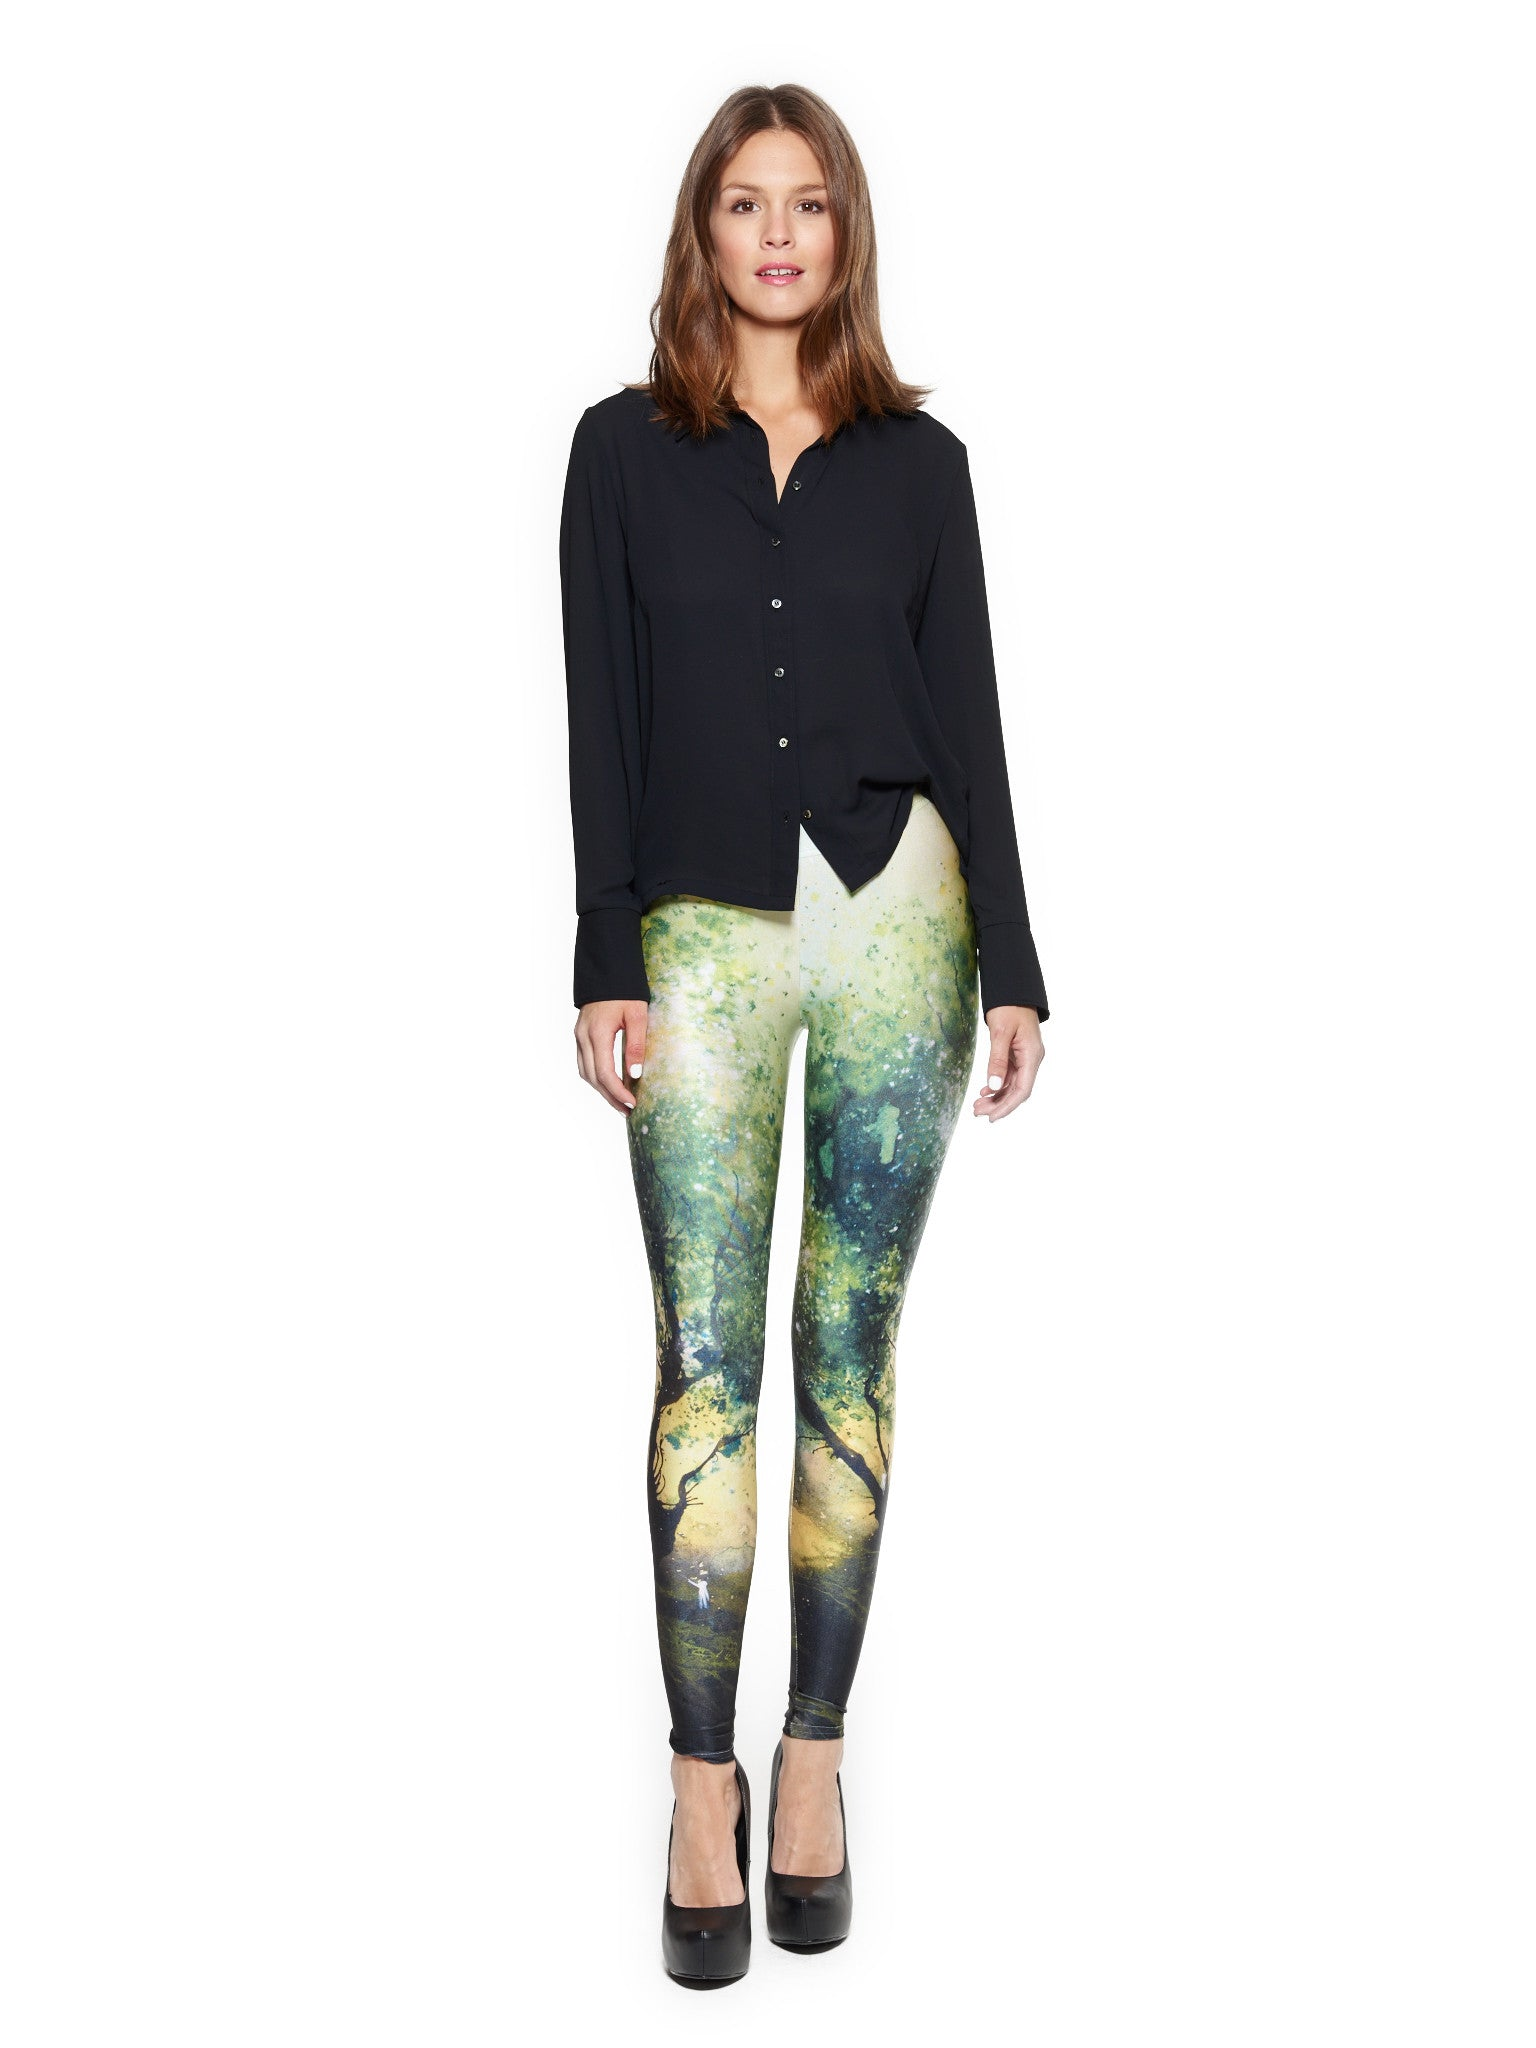 Climb Queen West Leggings - Nuvango Gallery & Goods - 1